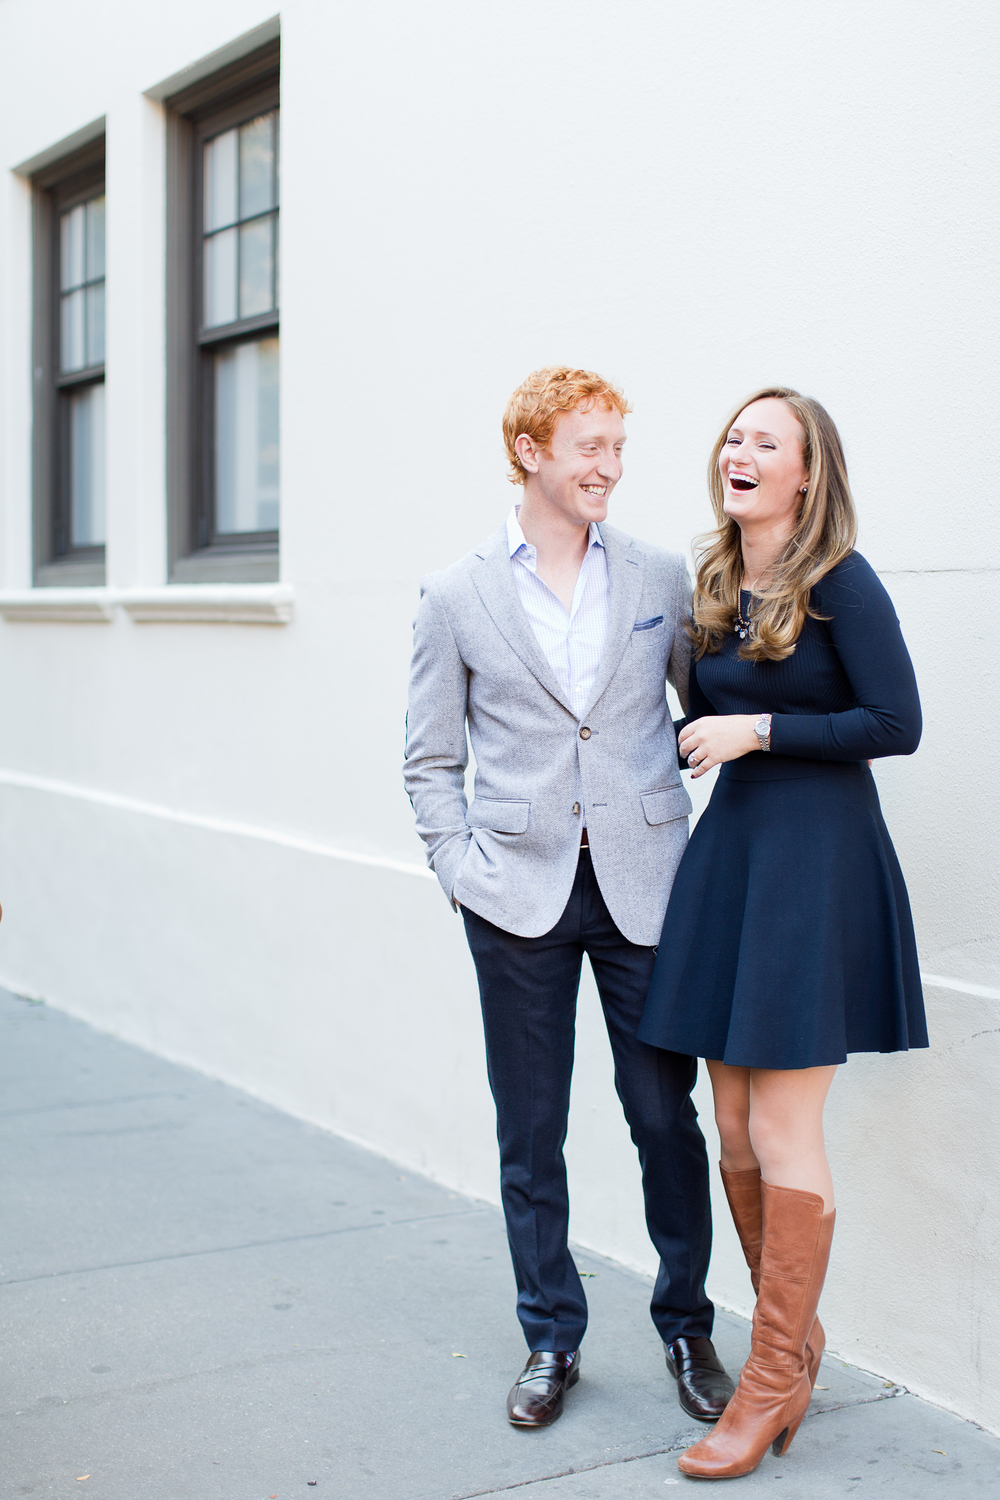 Melissa Kruse Photography - Allison + James West Village Engagement Photos-25.jpg